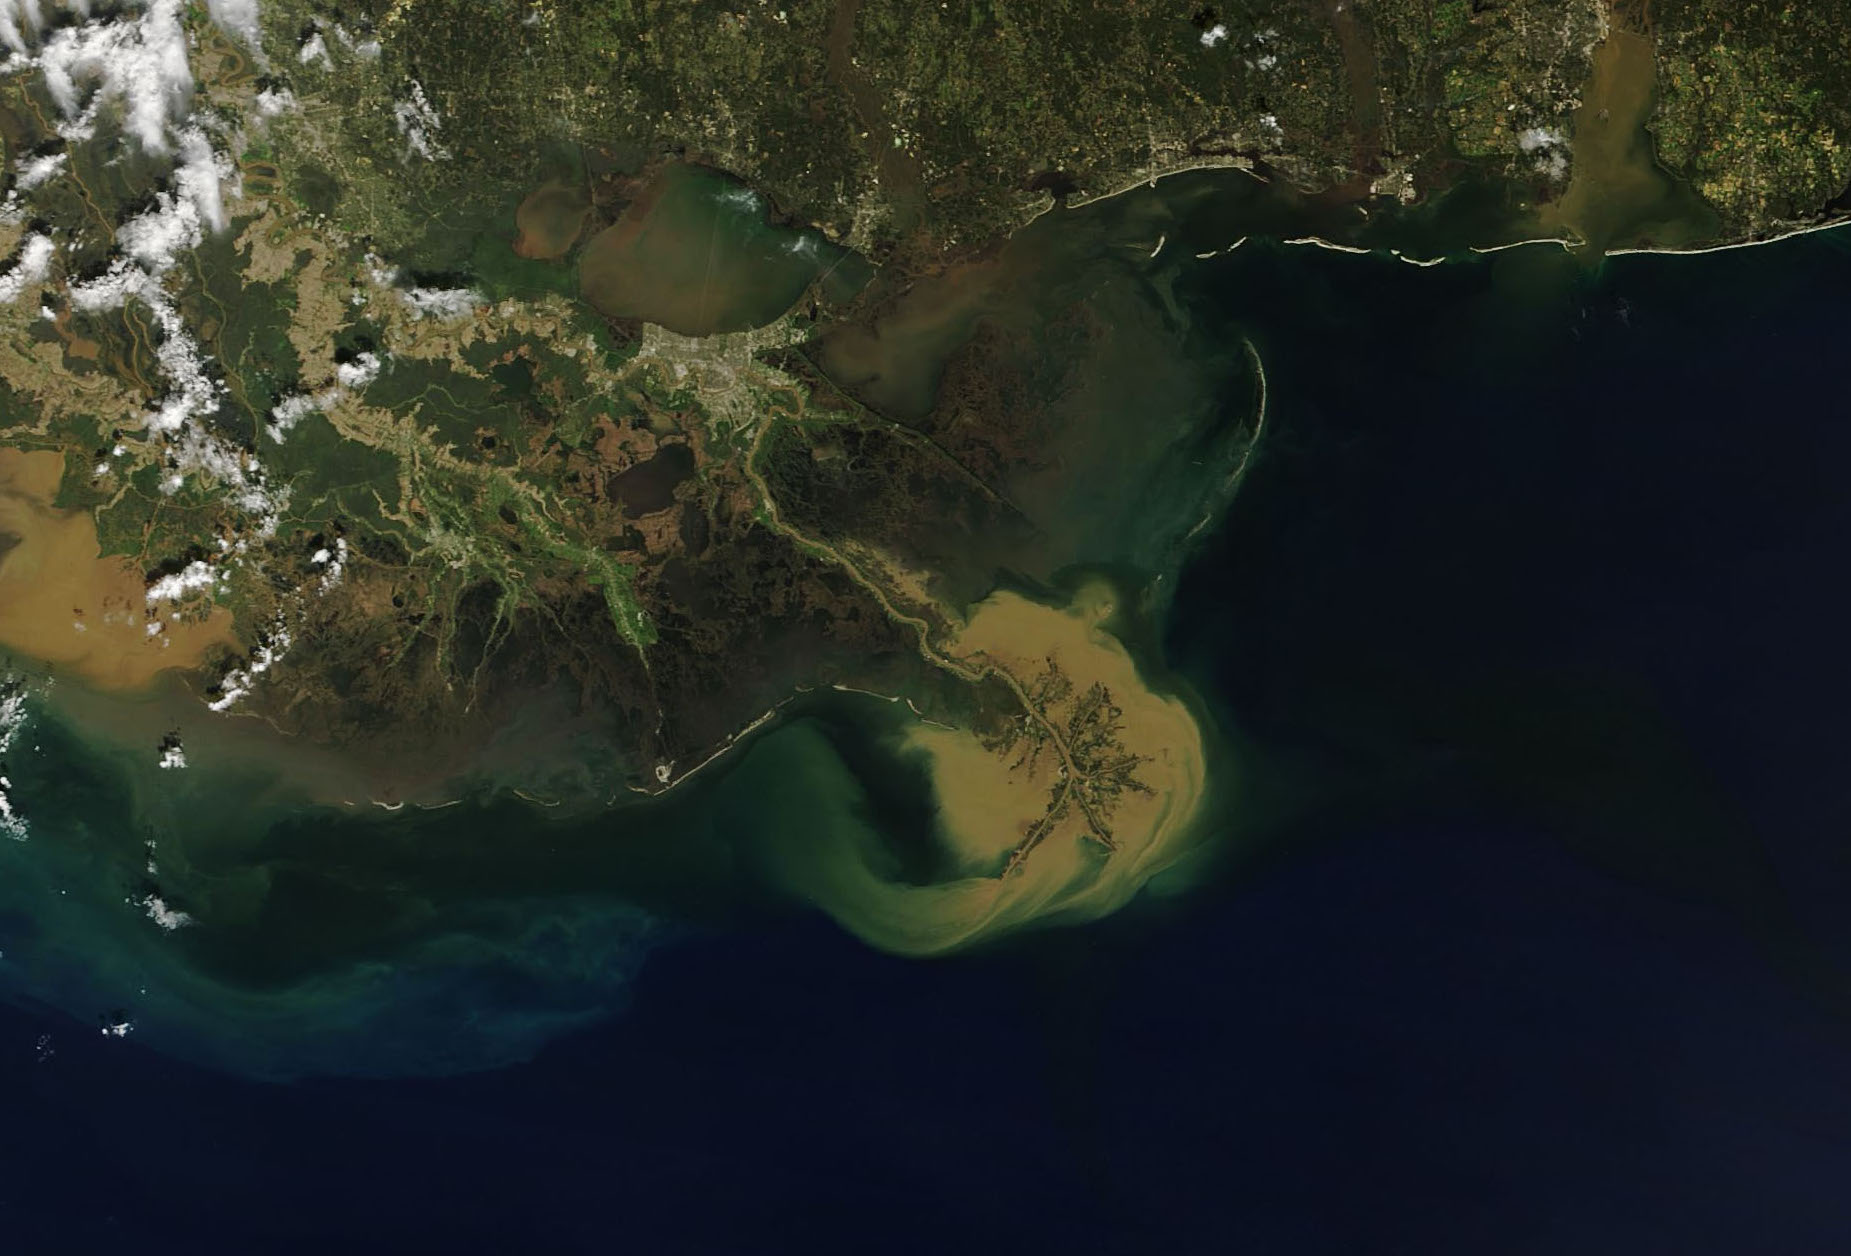 Today's Image of the Day comes from the NASA Earth Observatory and features a look at sediment in the Gulf of Mexico off the coast of Louisiana.